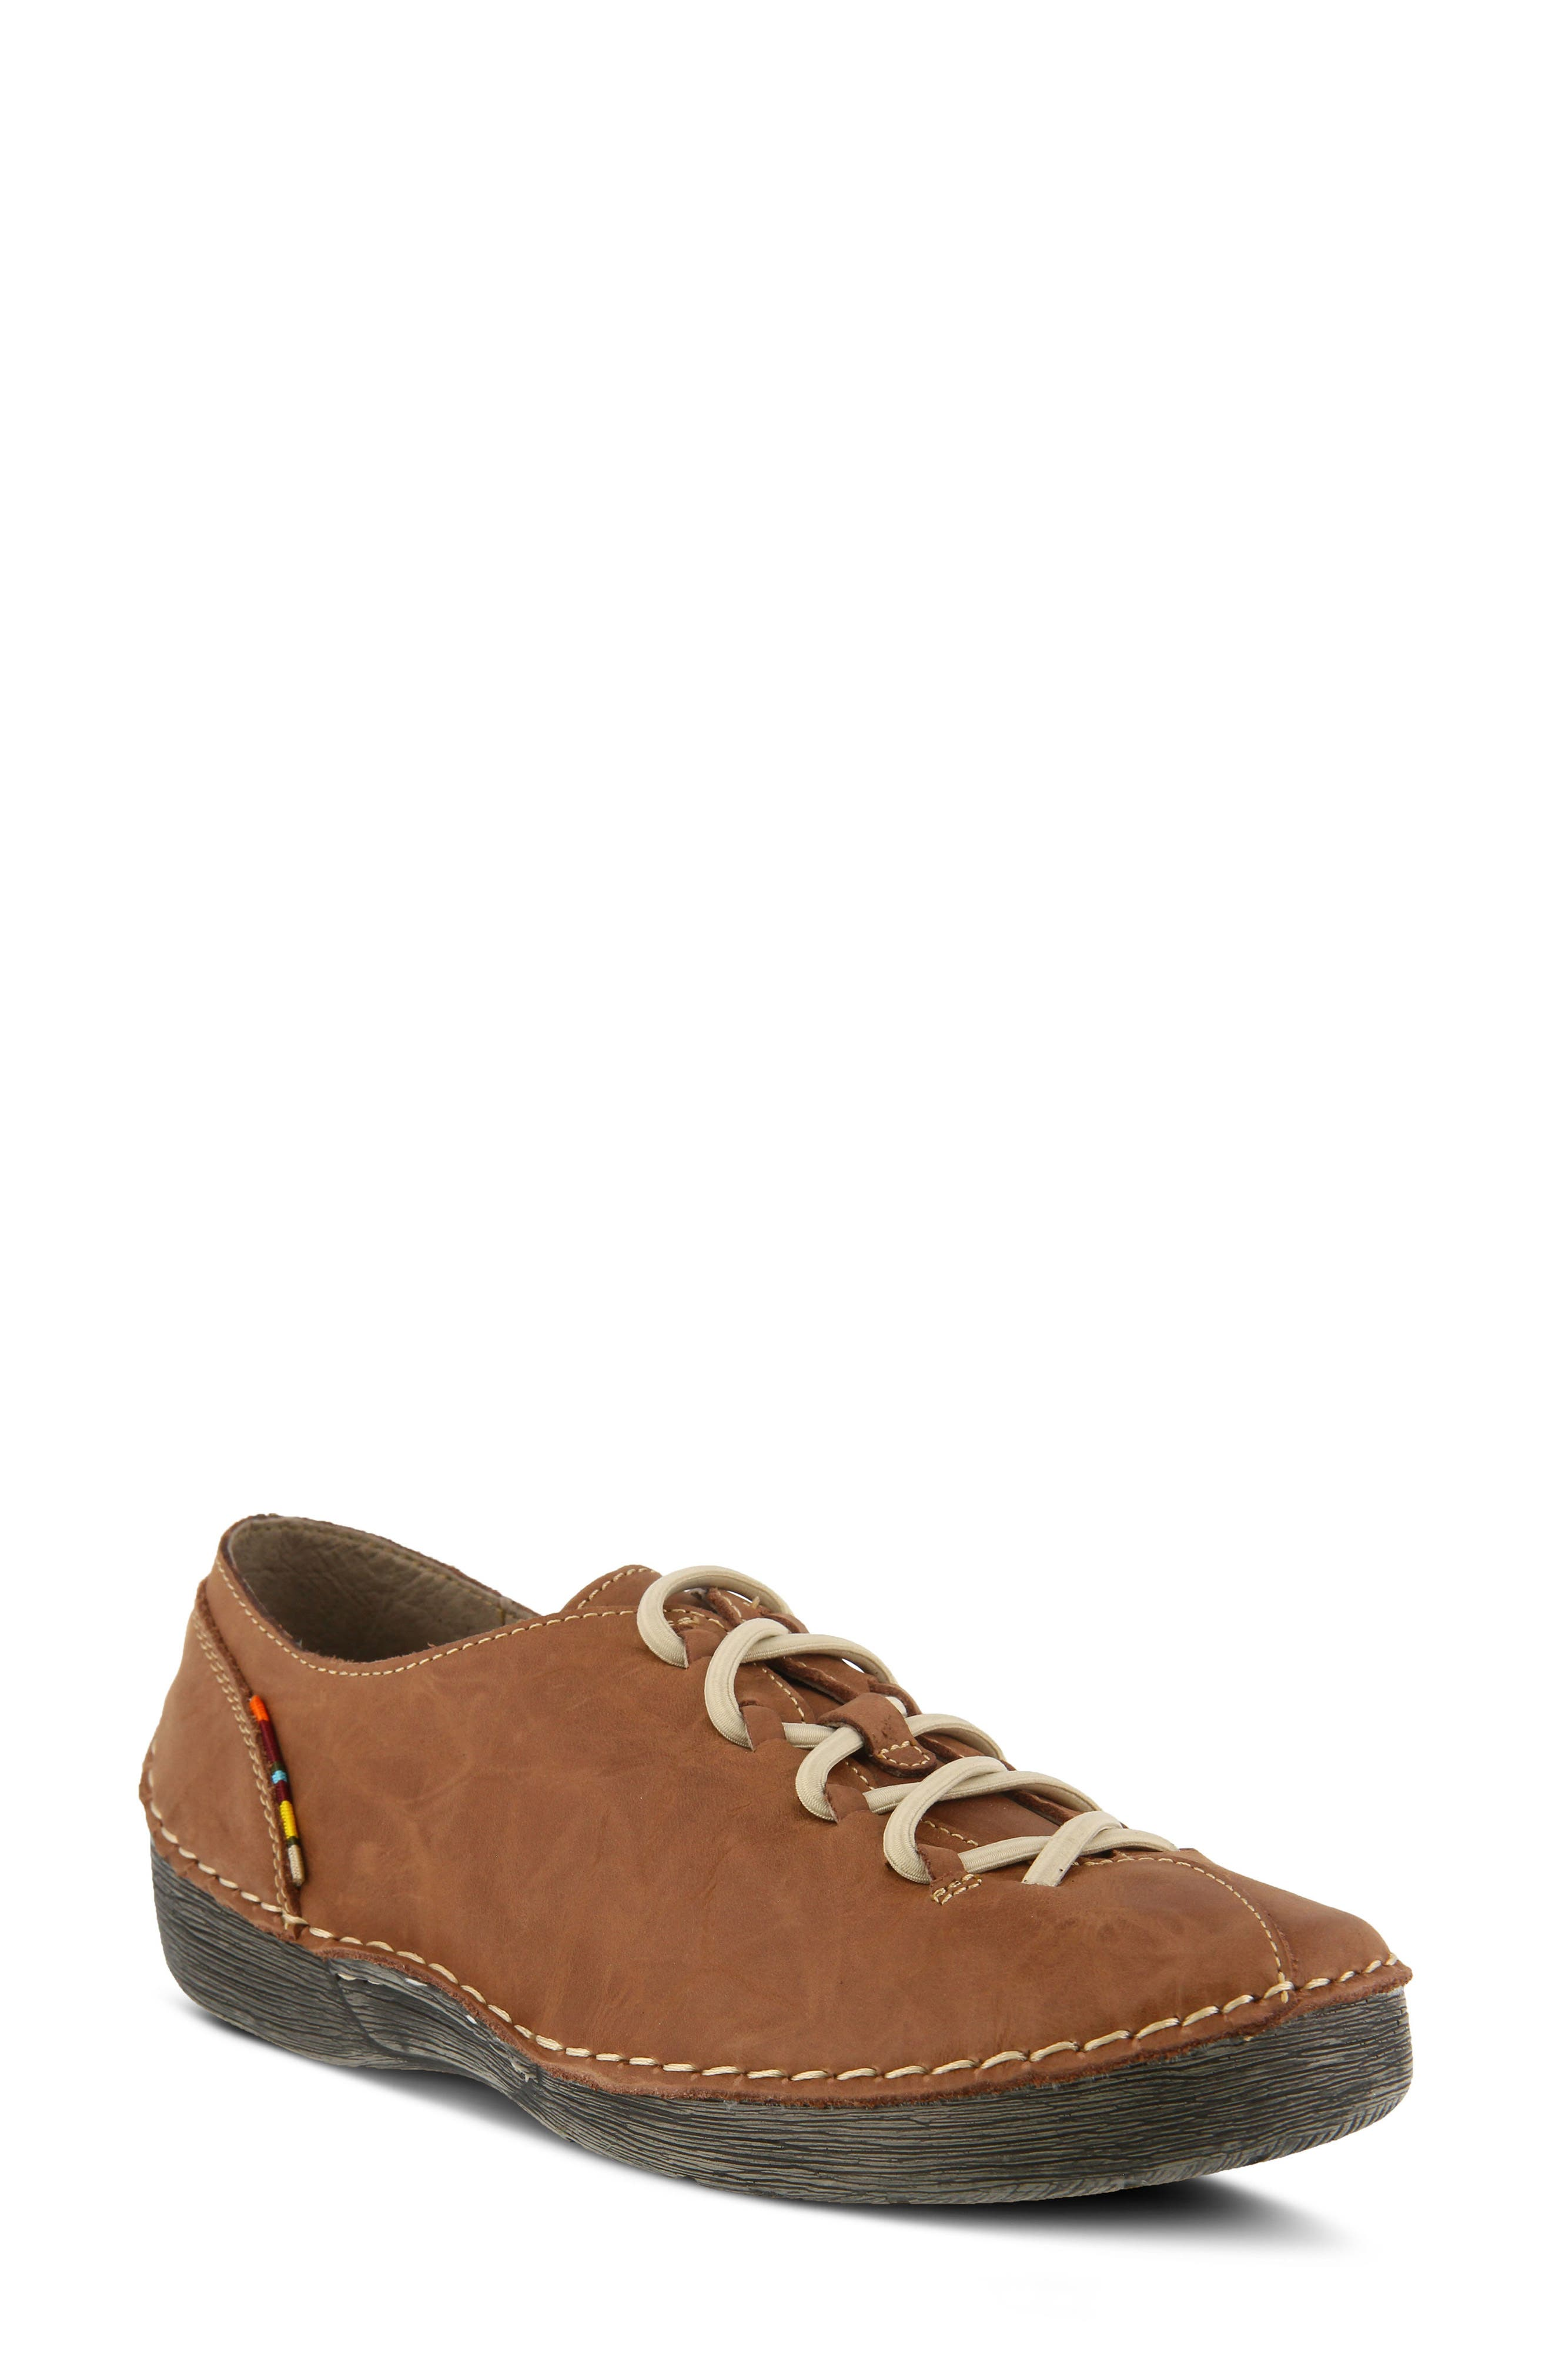 Carhop Sneaker,                             Main thumbnail 1, color,                             BROWN LEATHER